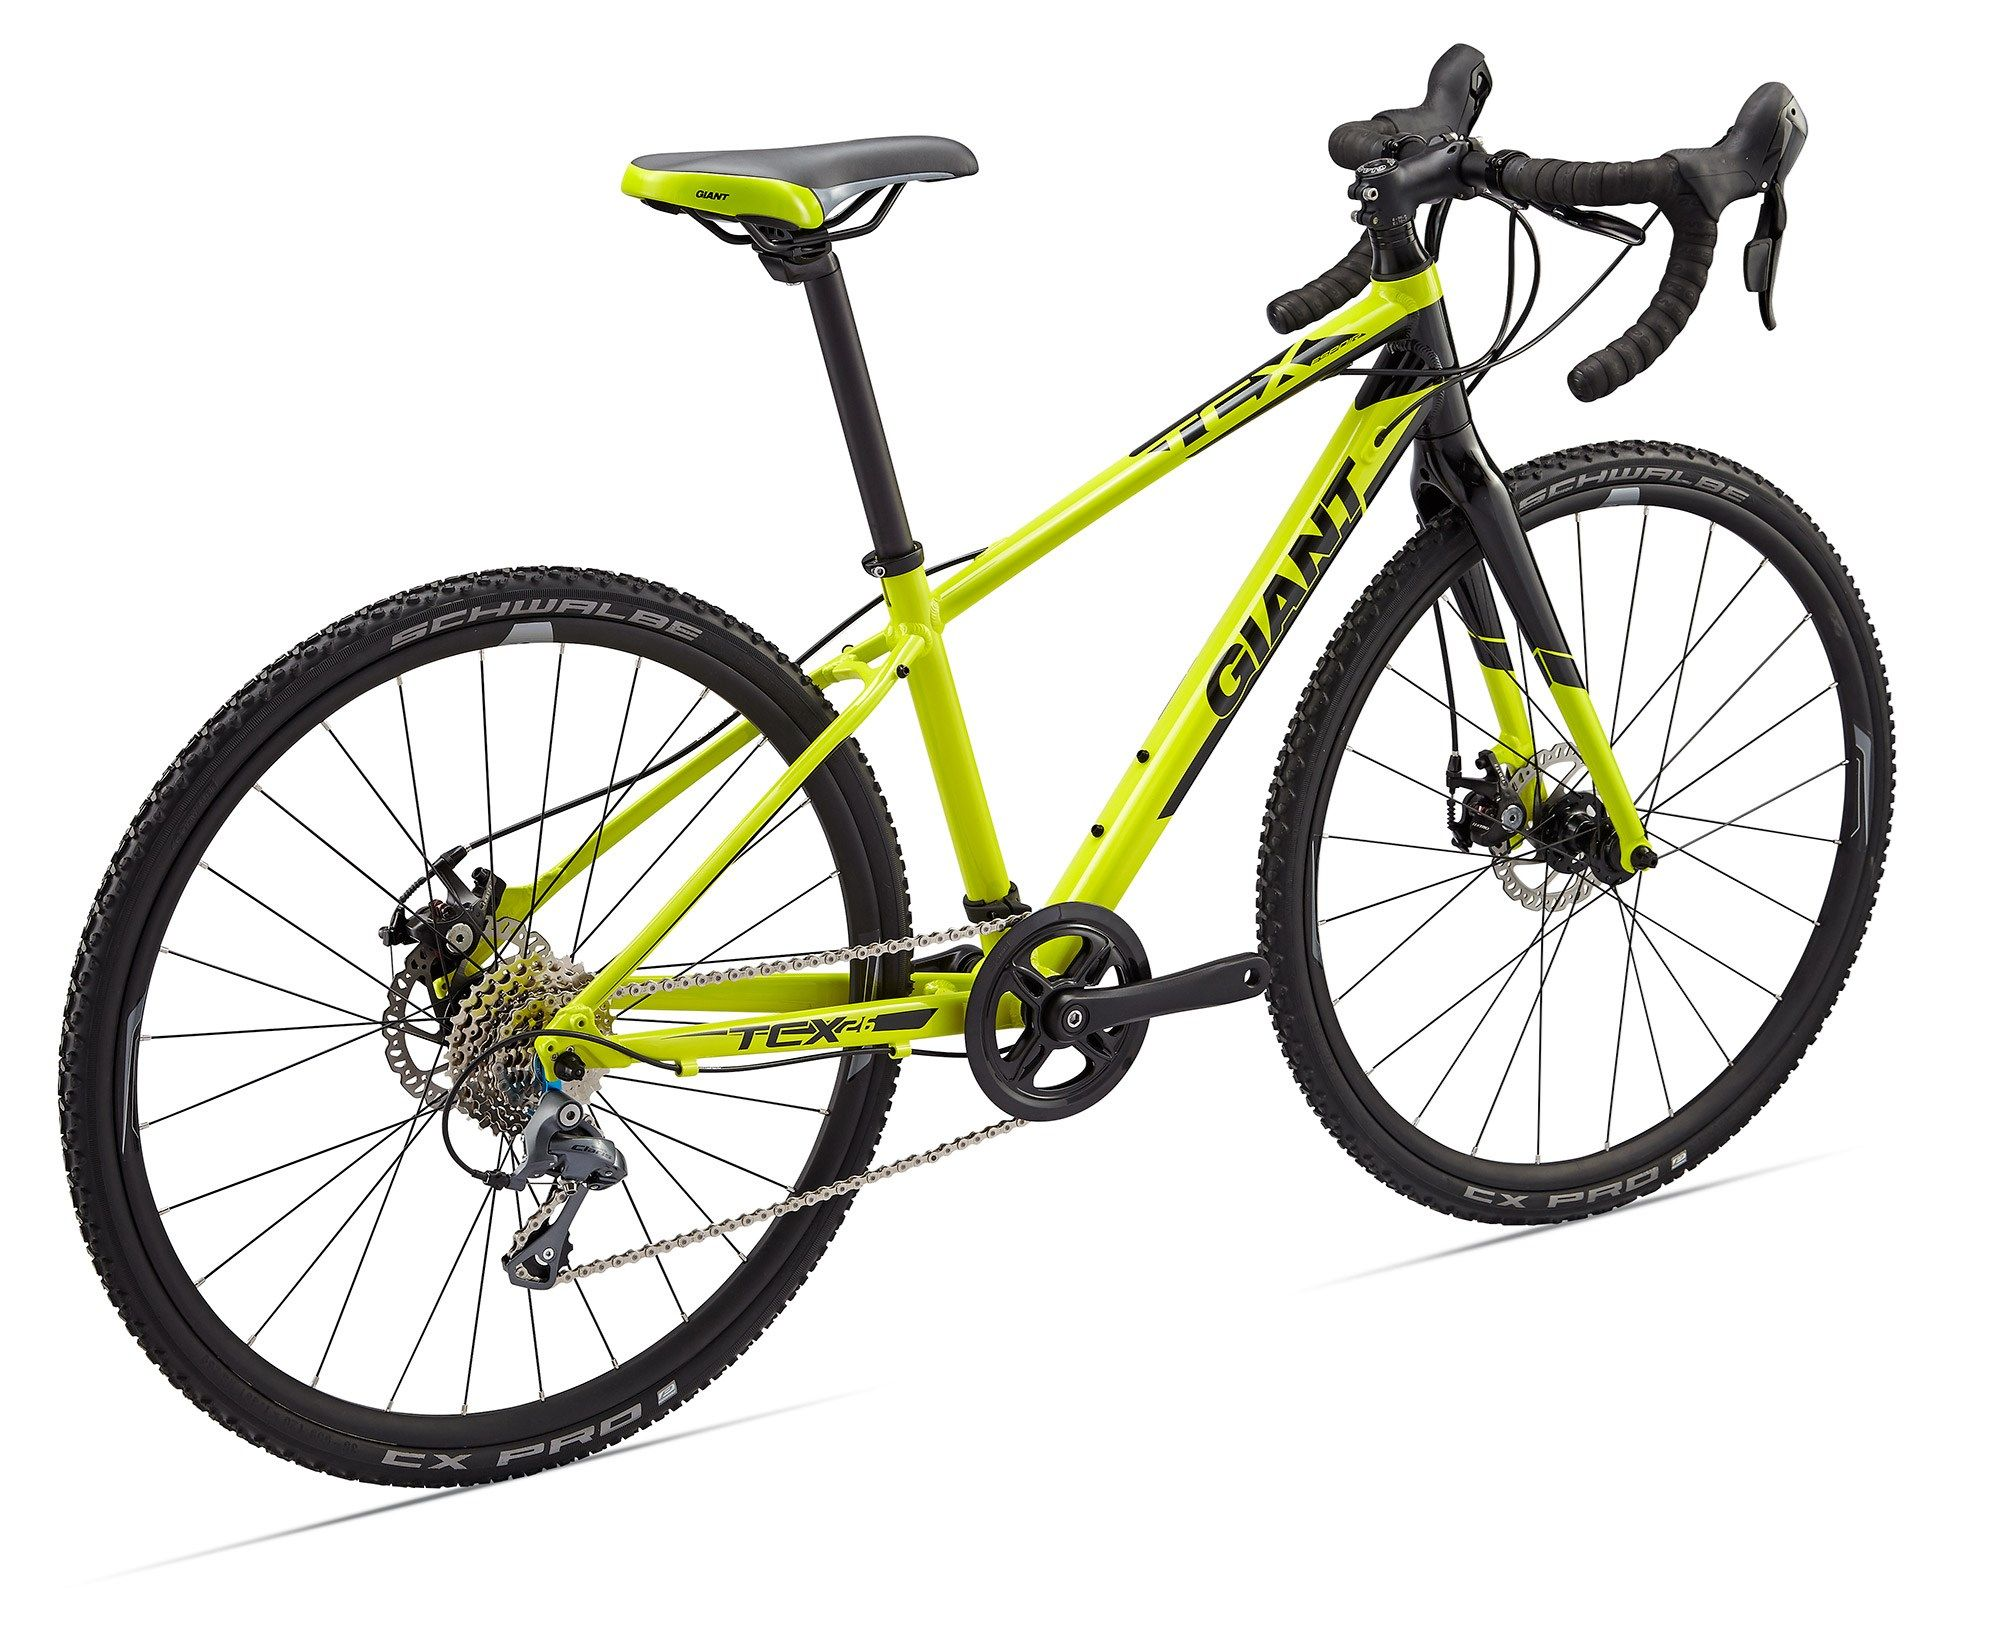 Tcx Espoir 26 2017 Giant Bicycles United States Bikes For